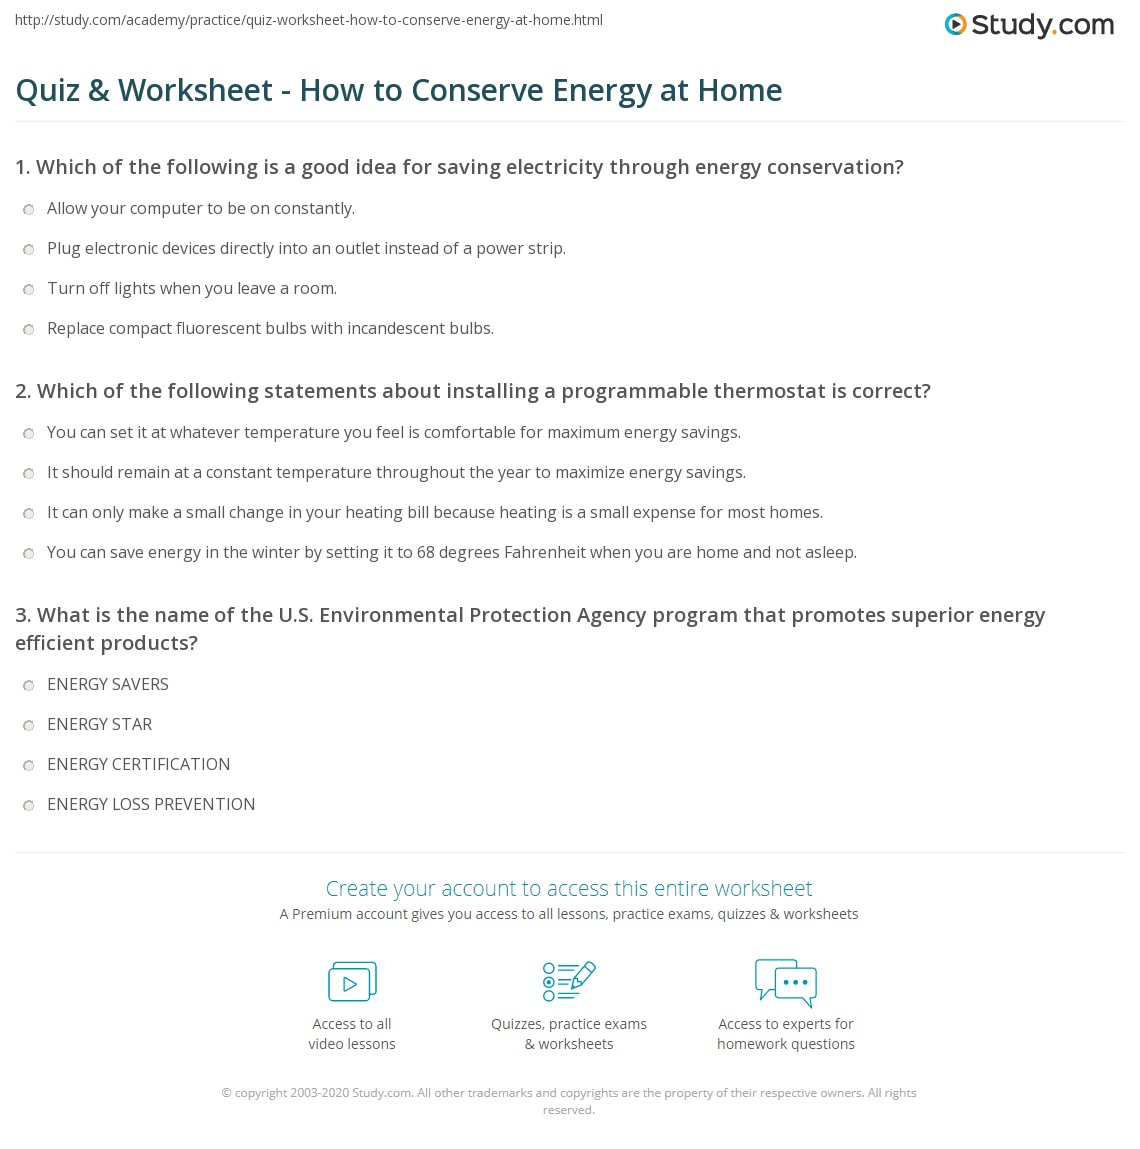 Quiz & Worksheet - How to Conserve Energy at Home | Study.com